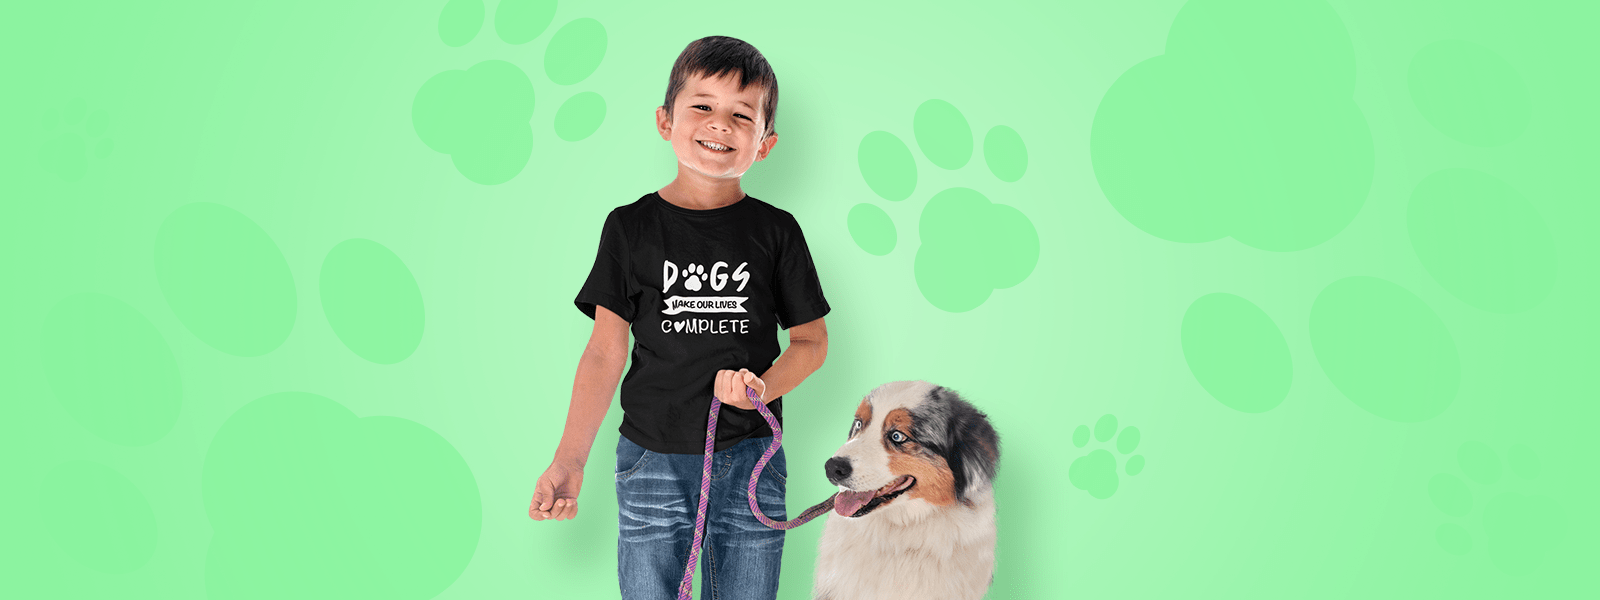 Best Collection for Animal Lovers